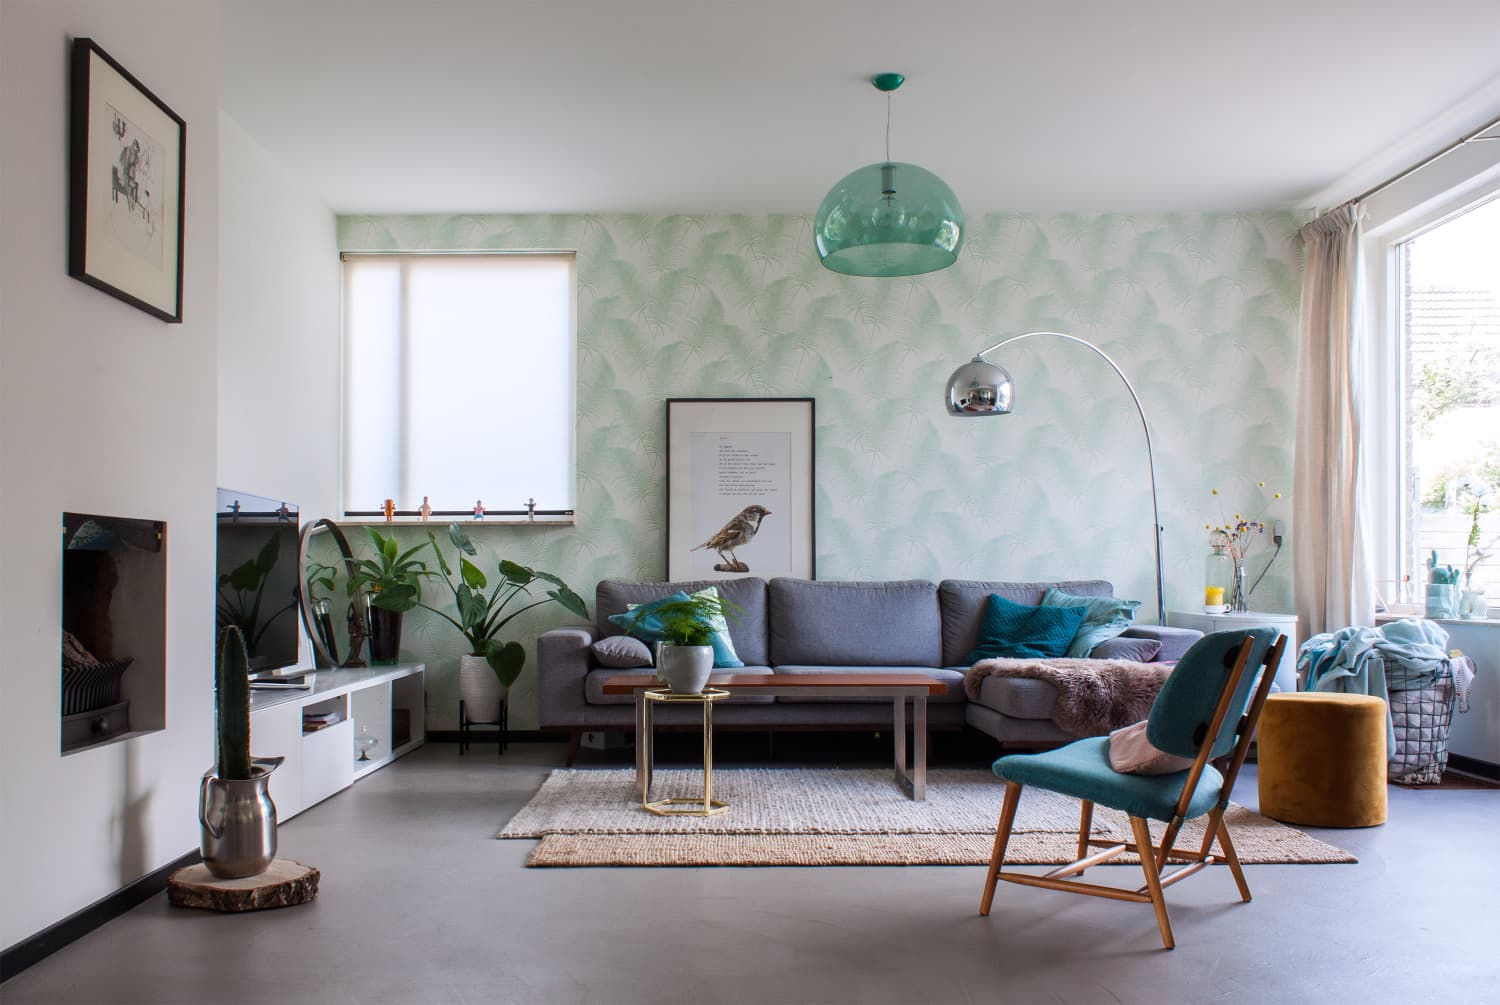 The Home Decor Style You Need, Based on Your Enneagram Type